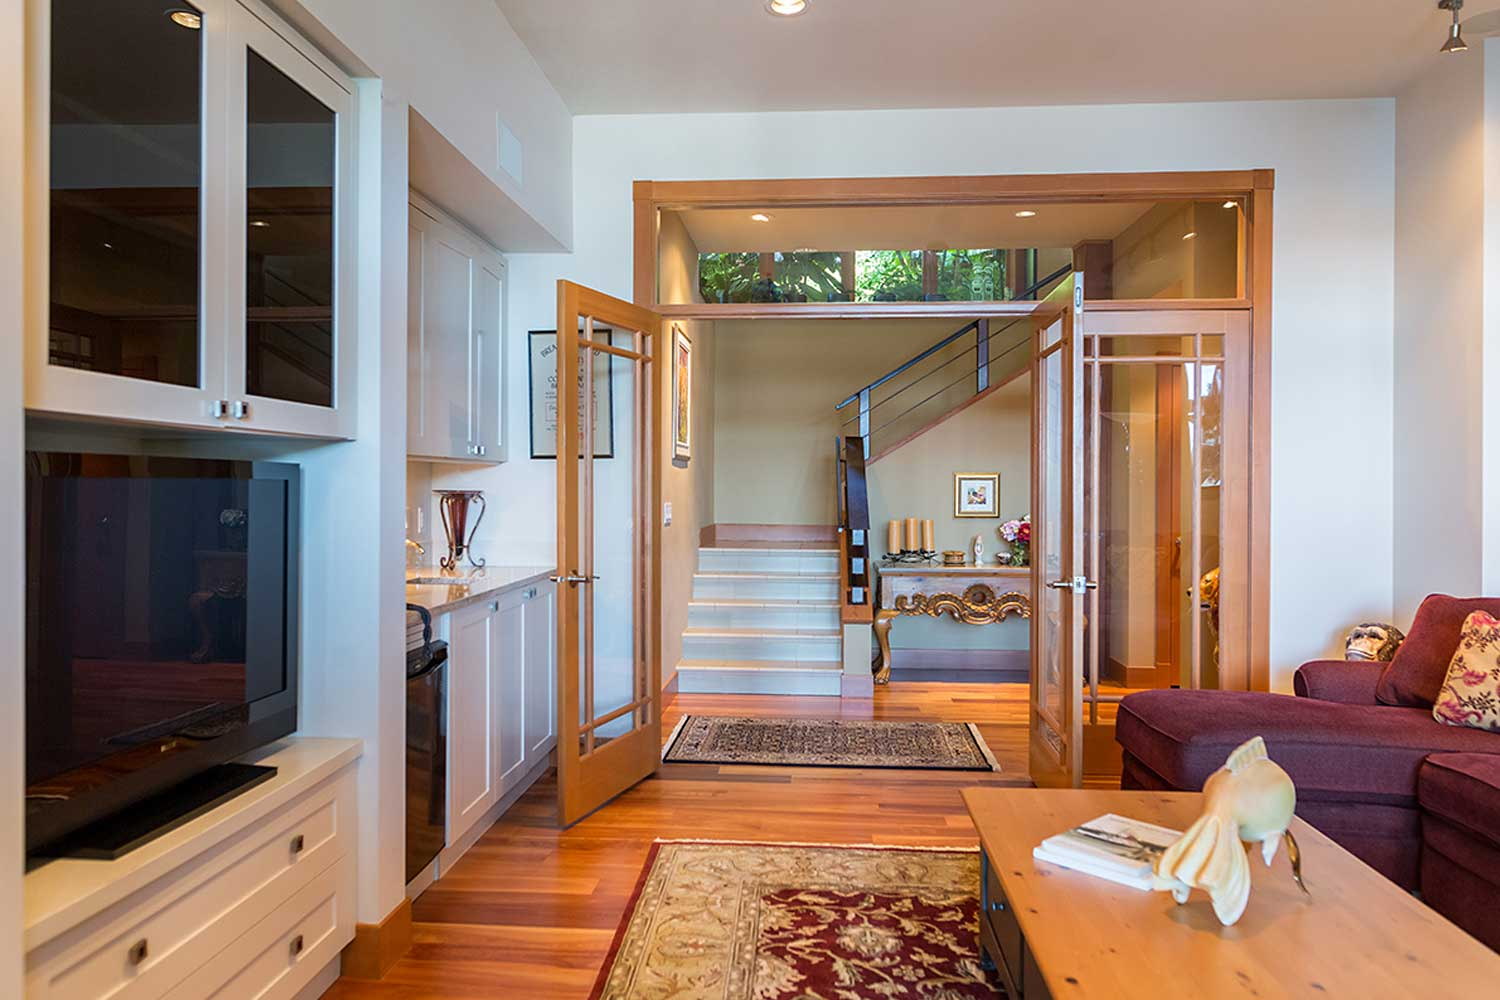 Doors open from the lounge to the upstairs area in this luxury Garden Bay, British Columbia accommodation.